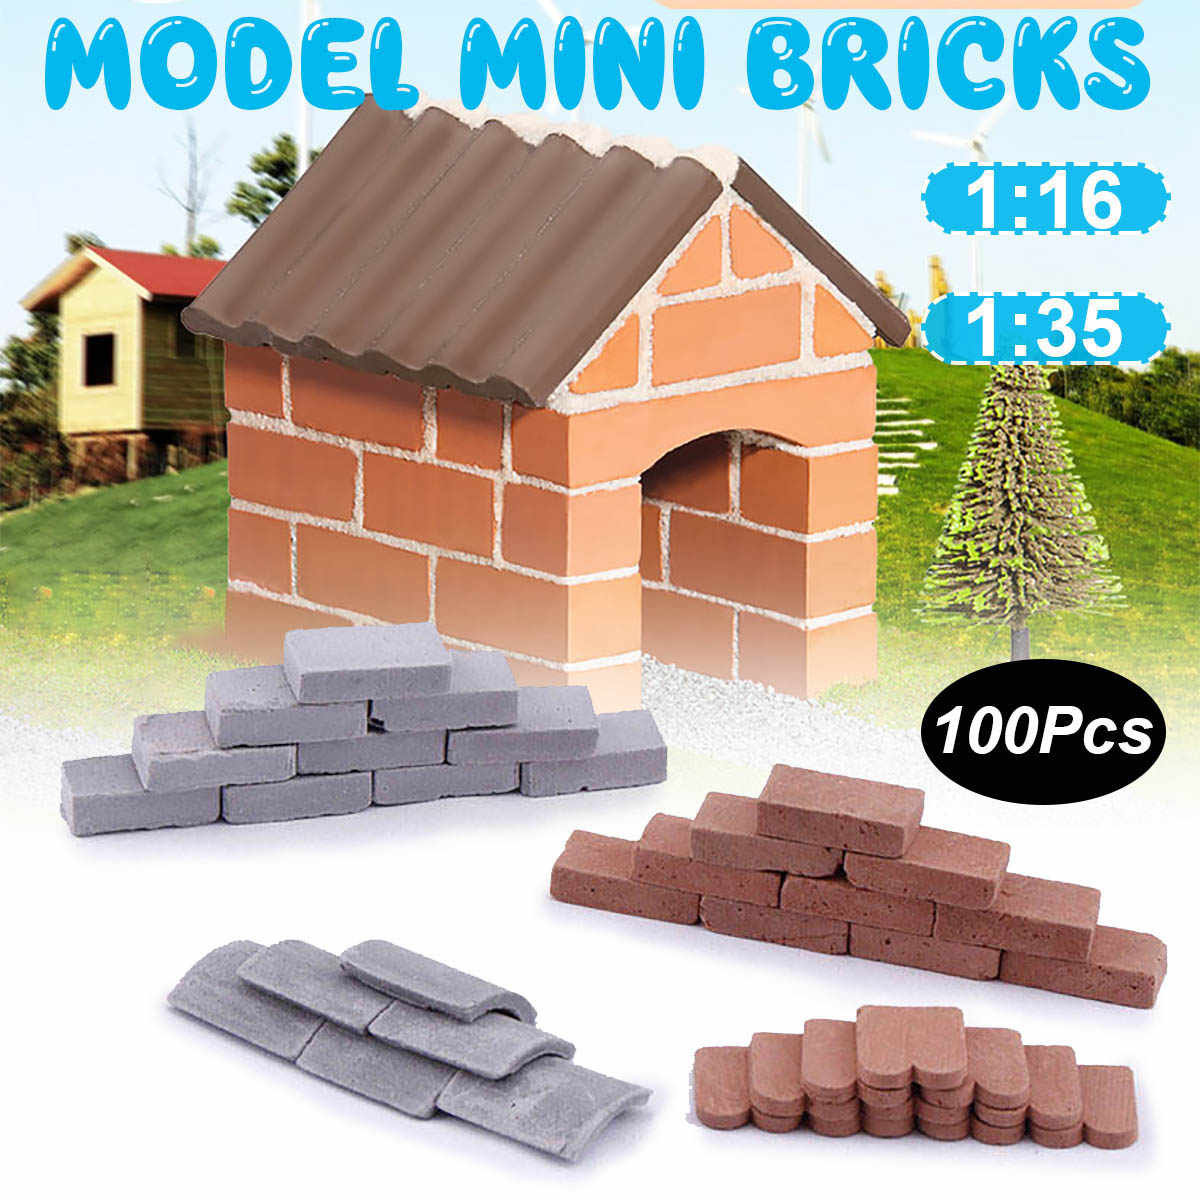 100Pcs/set Durable Decorative Miniature Modelling Building Landscape DIY Portable Kids Diorama Simulation Brick Toy Sand Table